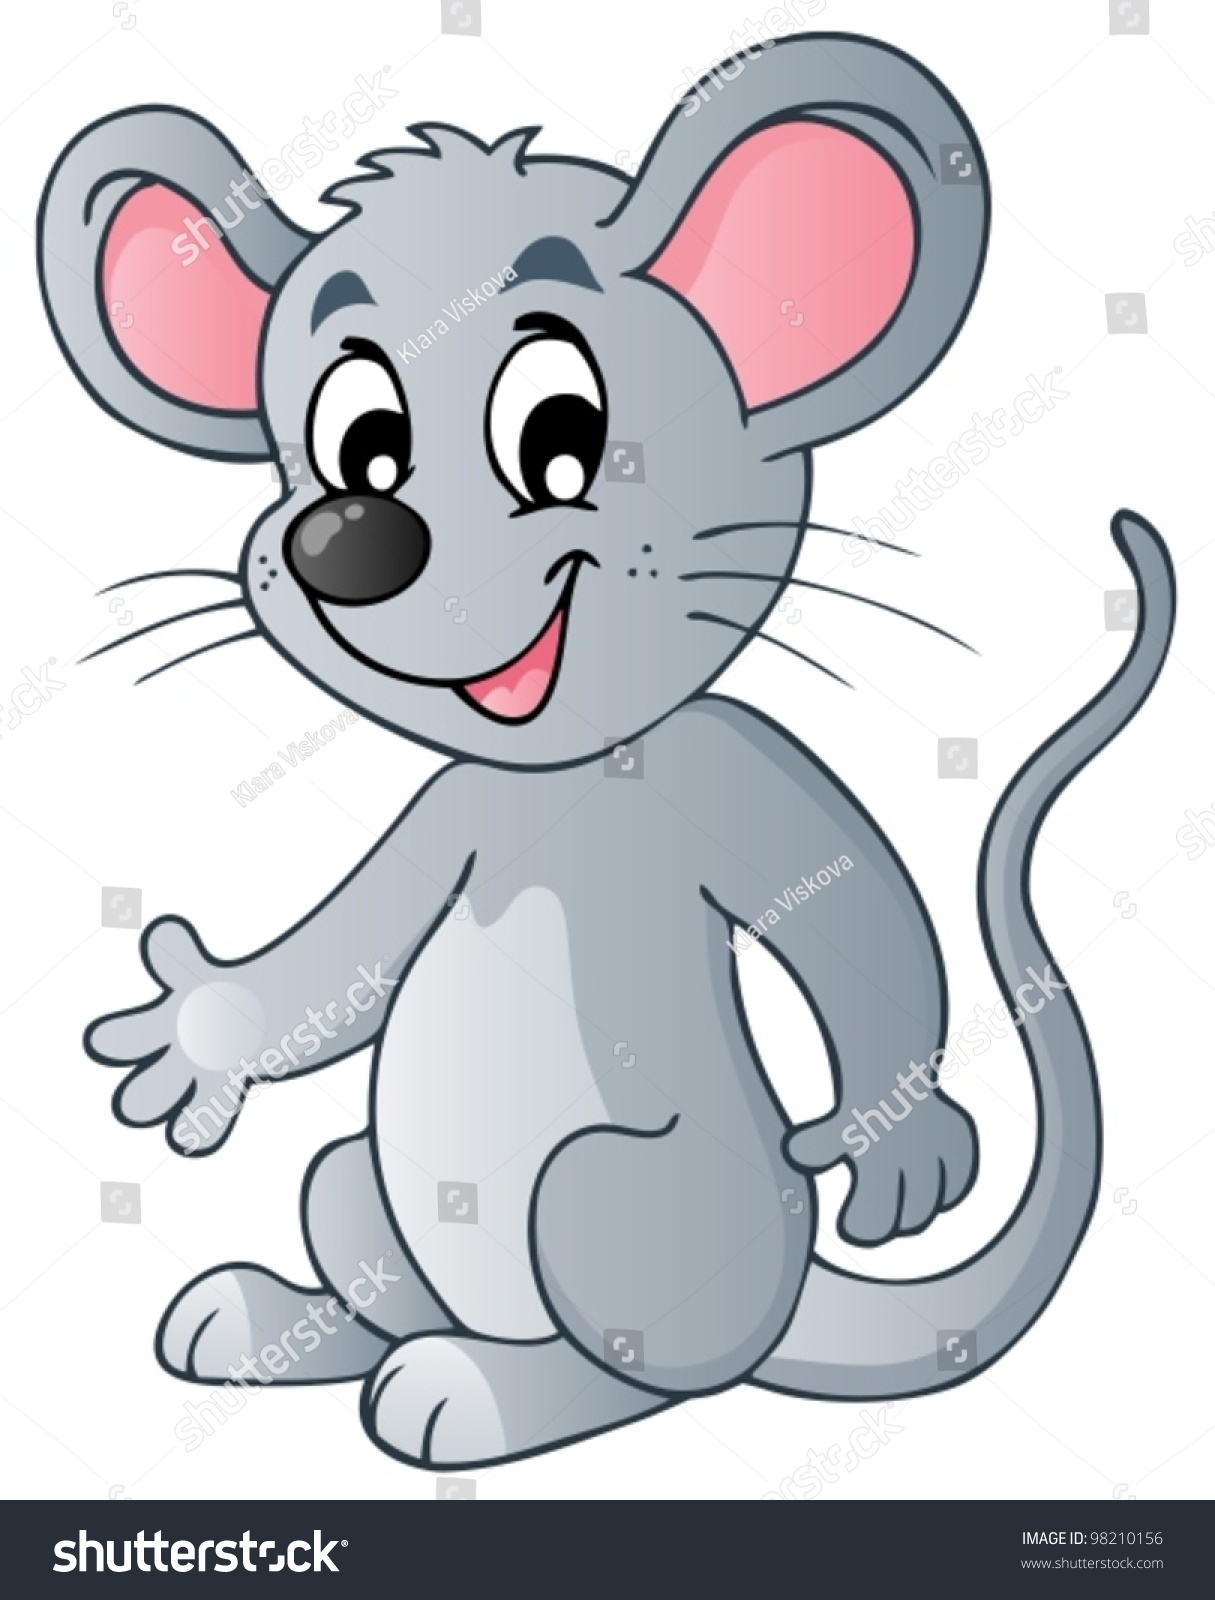 Cute Cartoon Mouse Vector Illustration Stock Vector ...